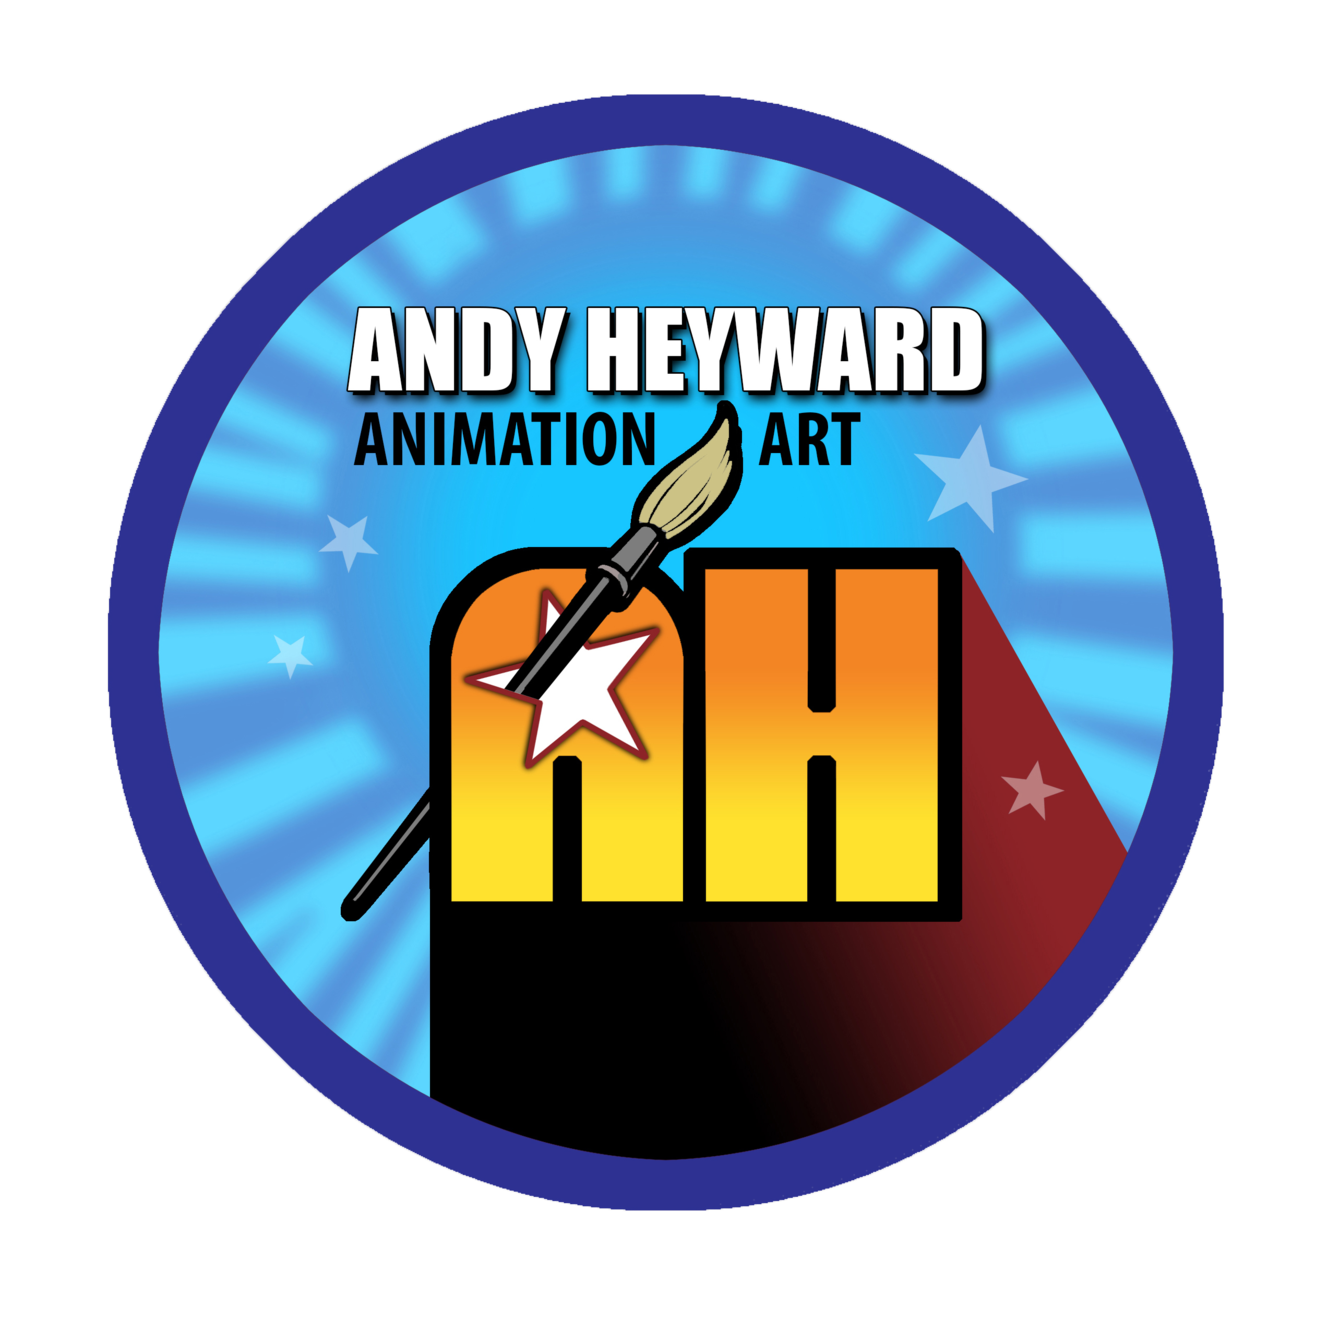 Andy Heyward Animation Art